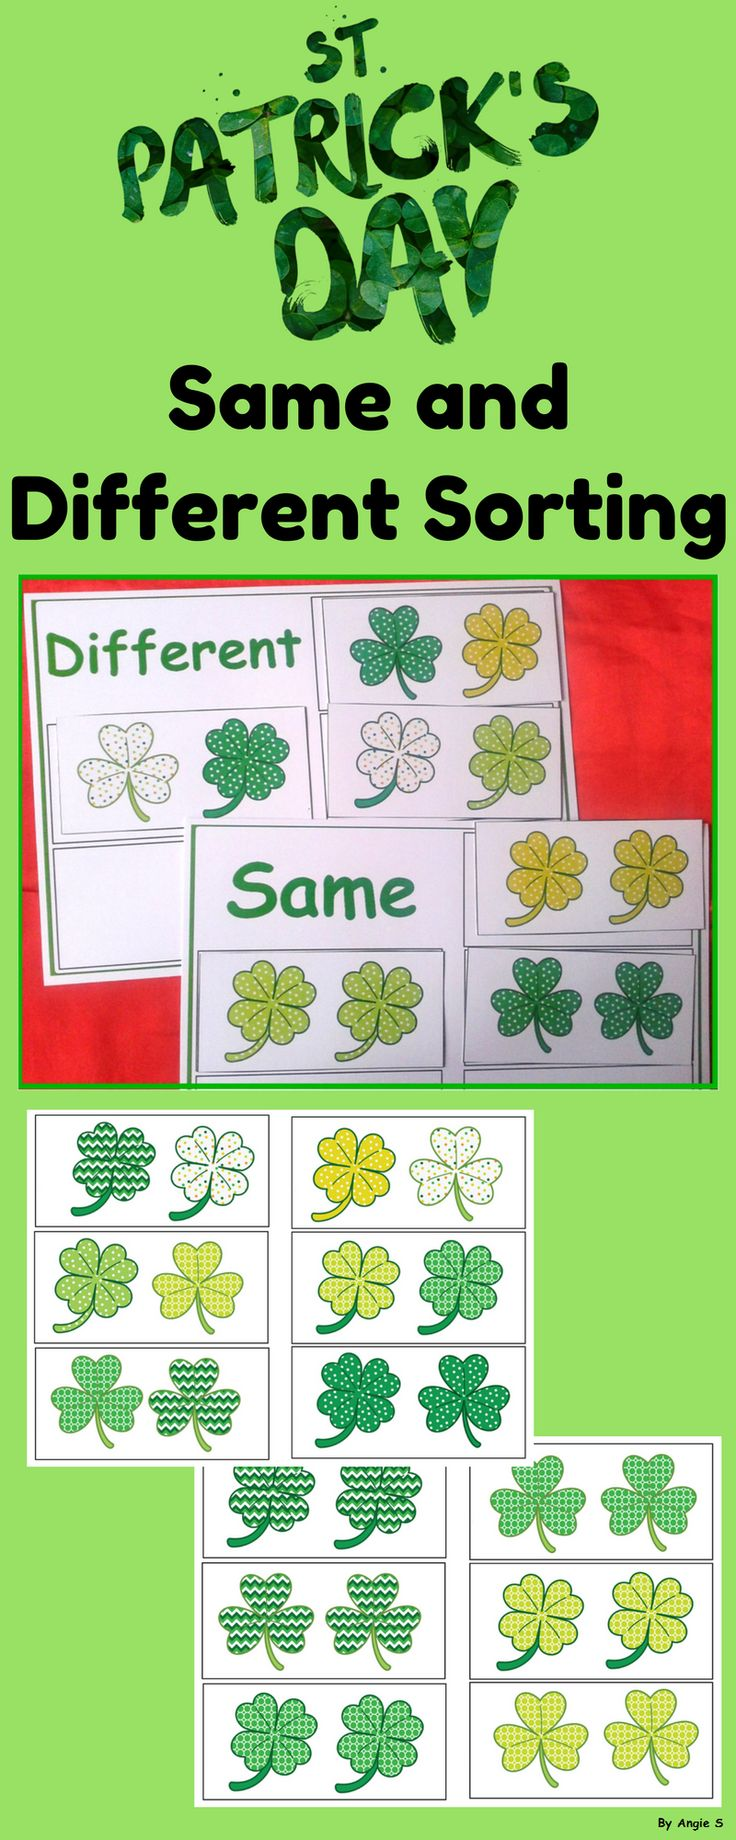 Saint Patrick`s Day Shamrocks Same and Different Sorting for Special Education, preschool and kindergarten students is a simple exercise to develop kids' discrimination ability. #saintpatricksday #spring #shamrock #sameanddifferent #tpt #teacherspayteachers #activity #kindergarten #preschool